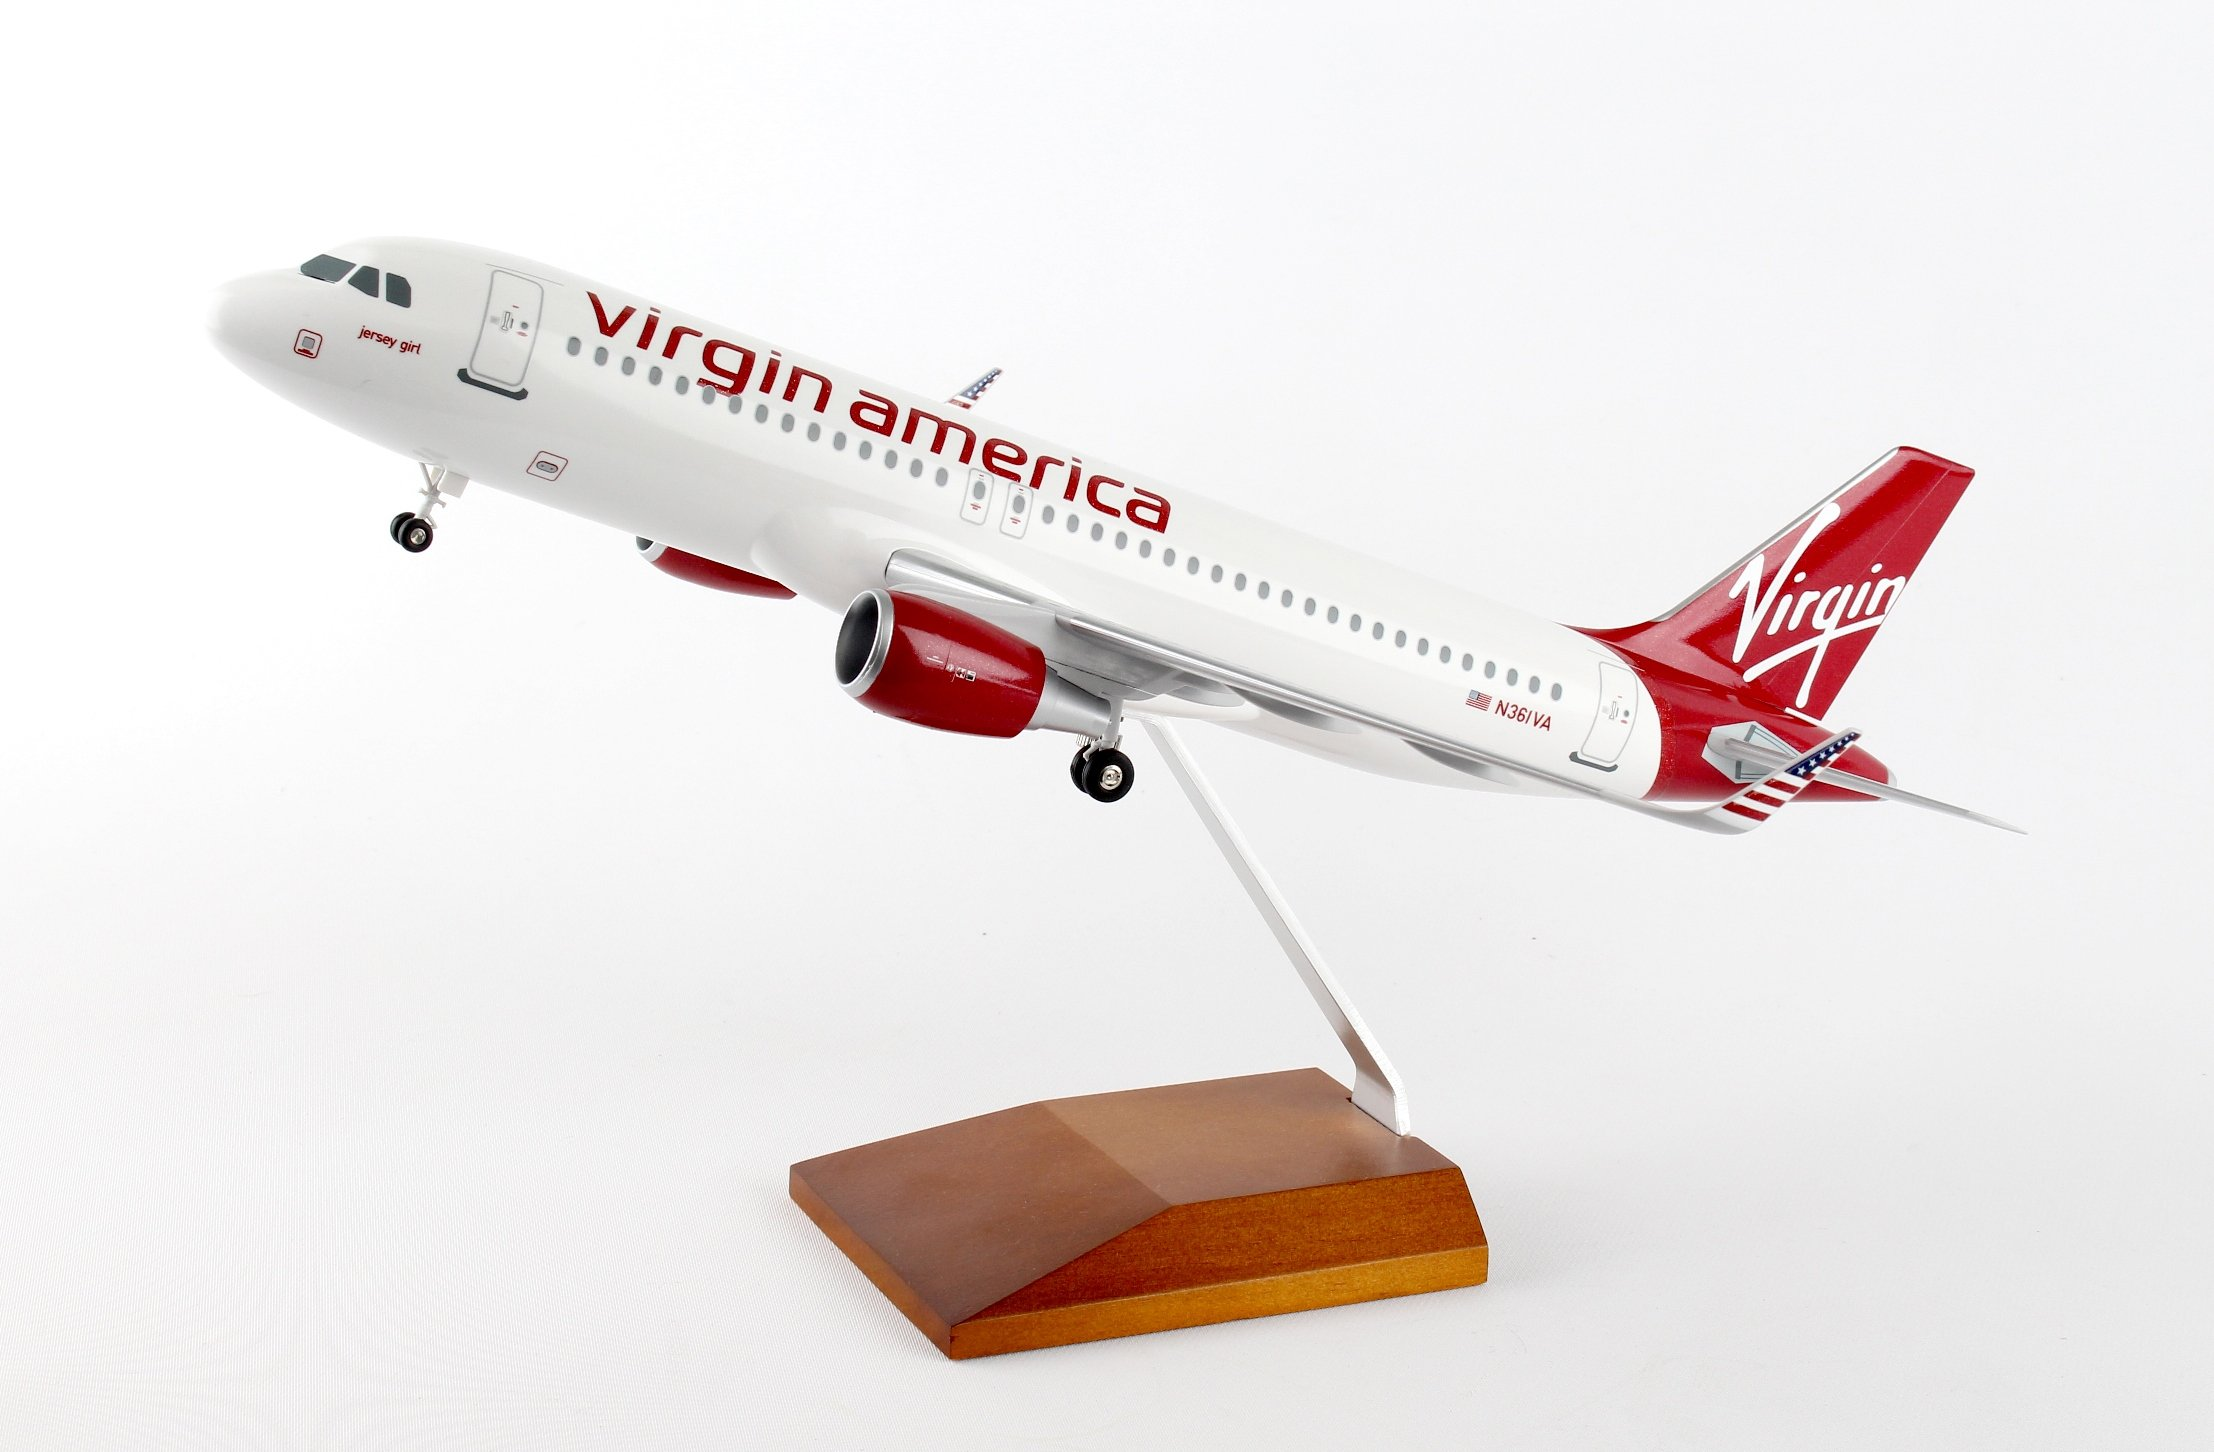 Buy Virgin America Now!